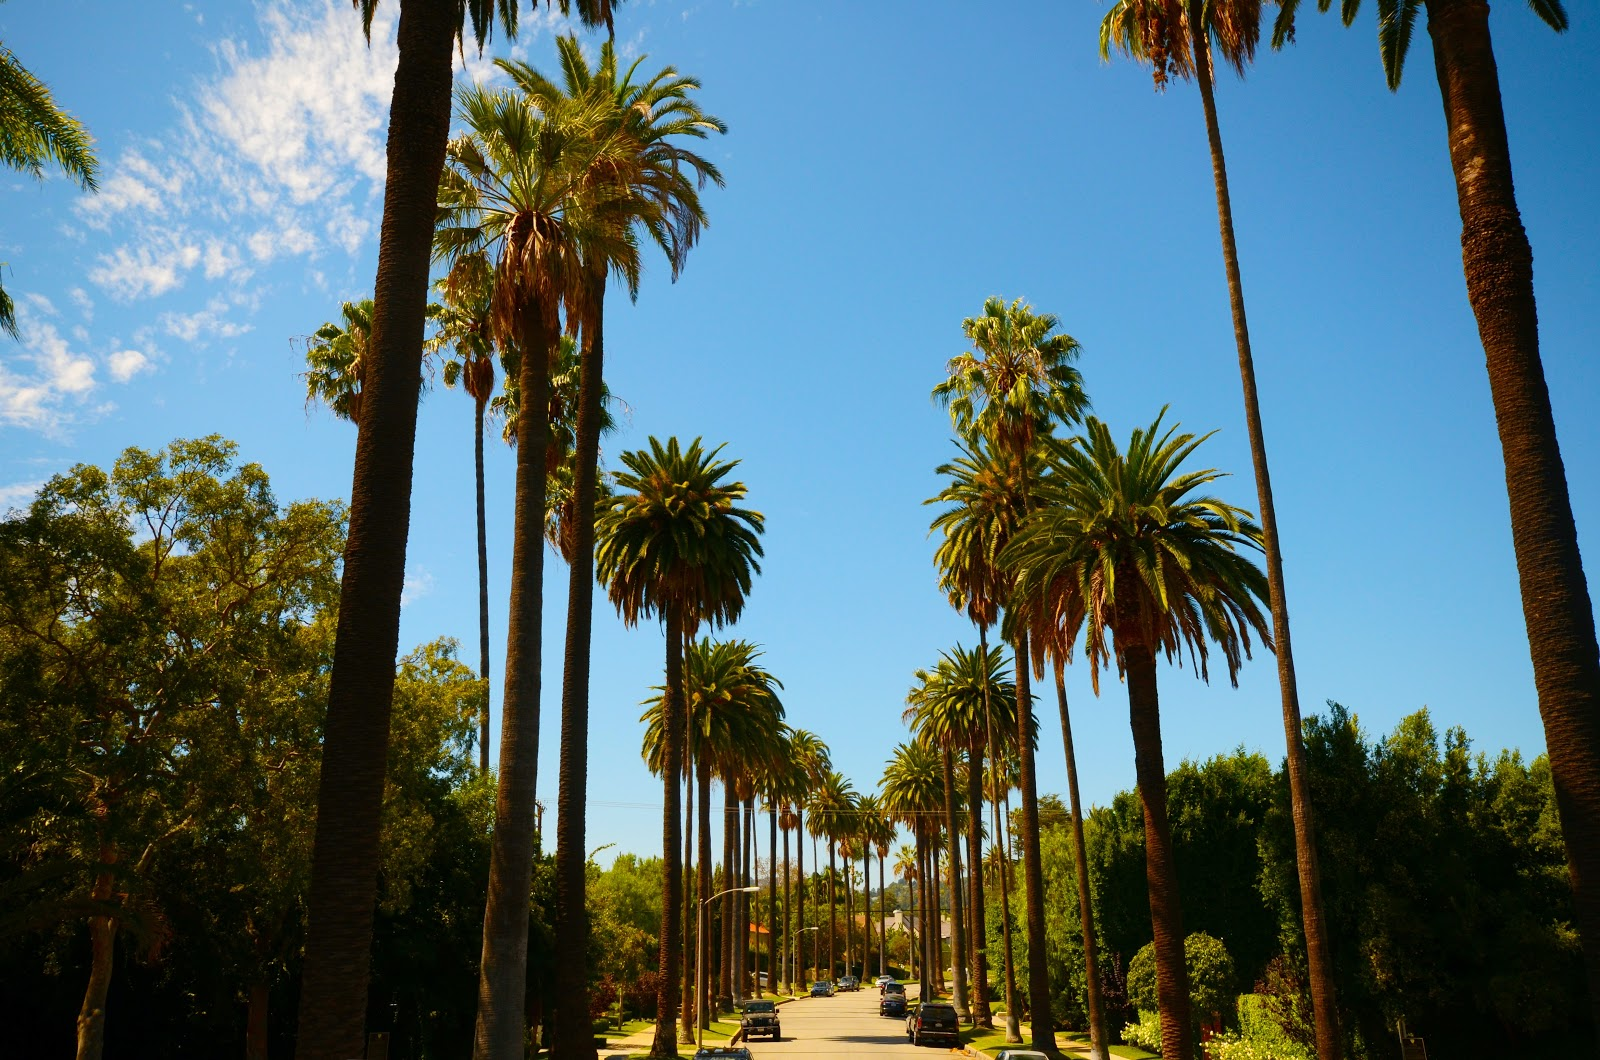 Palm trees in perfect line in Los Angeles